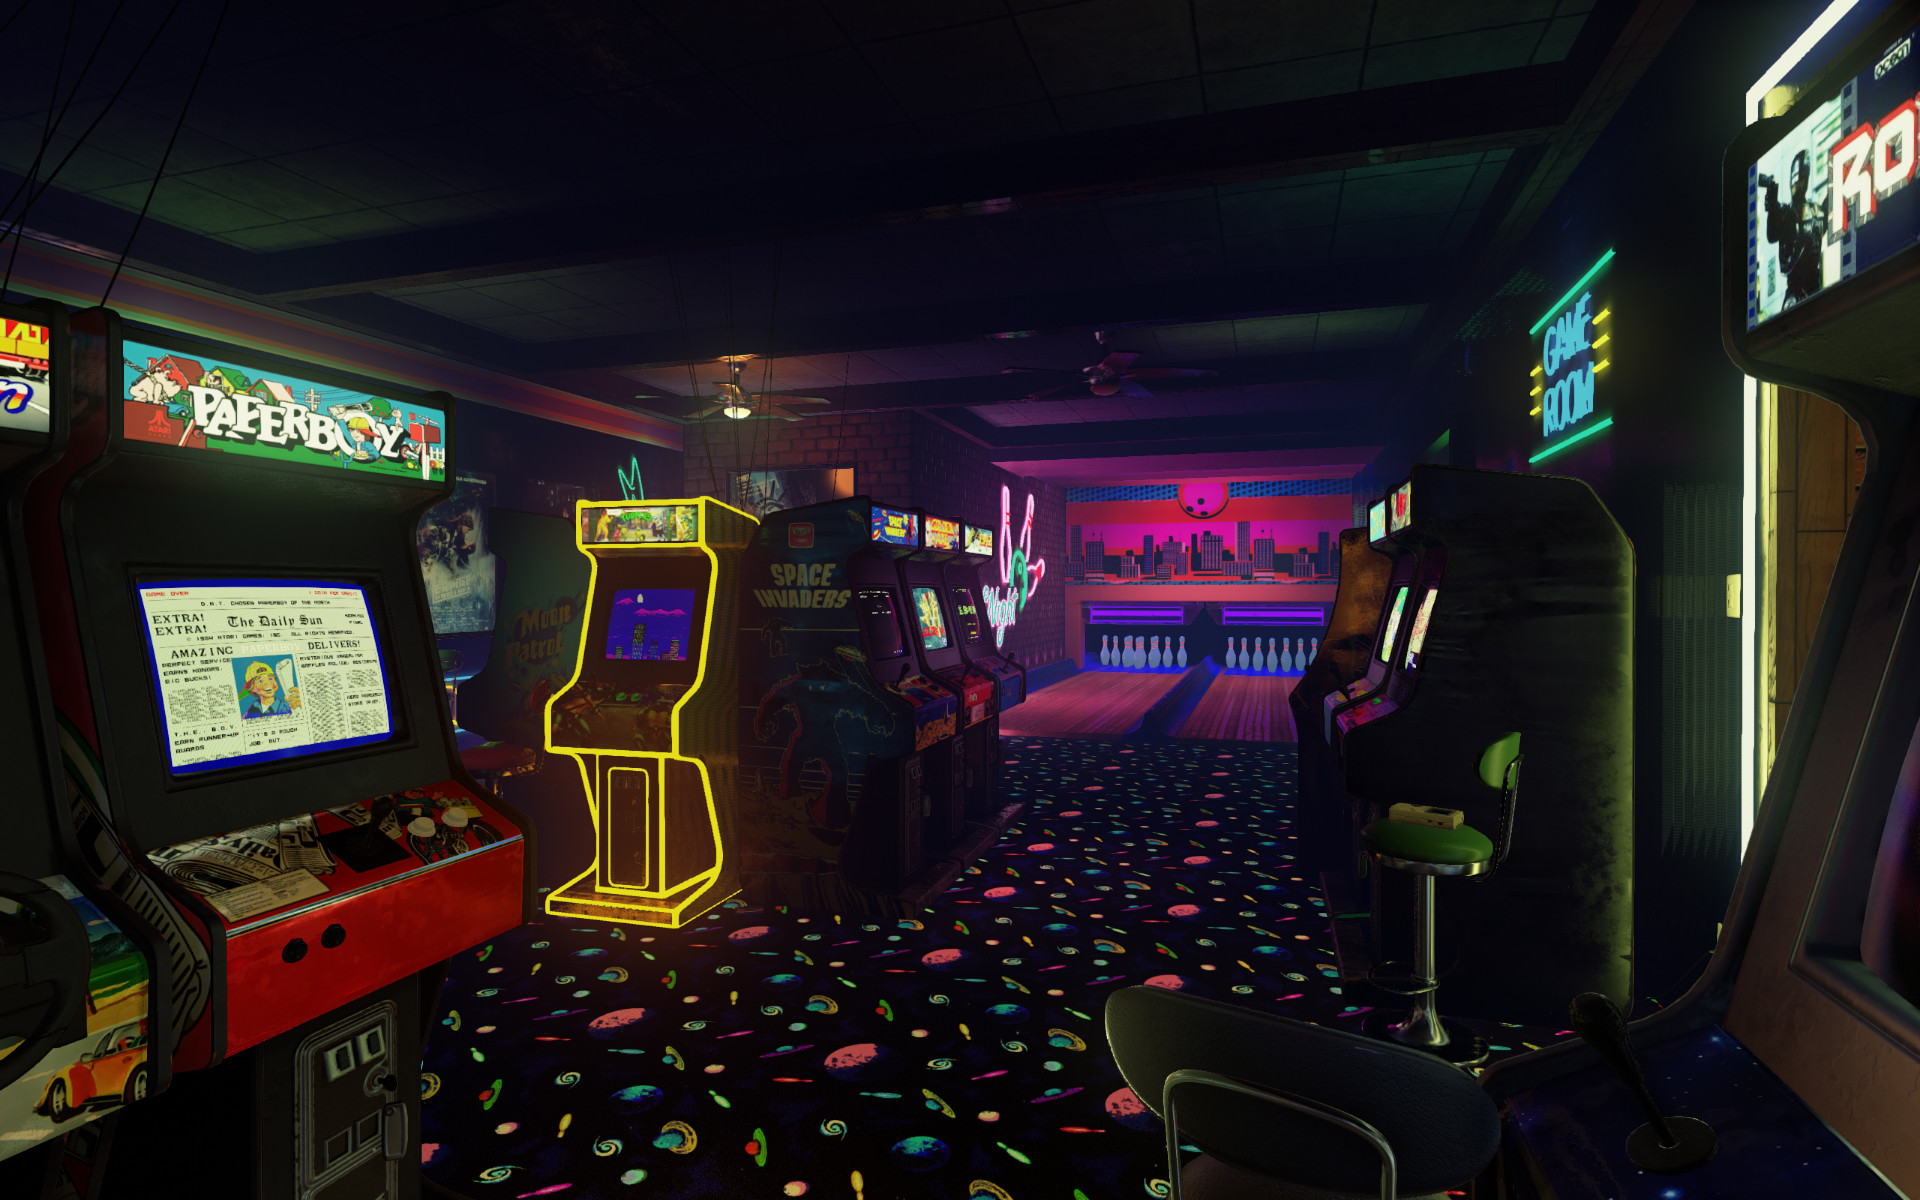 Res: 1920x1200, NewRetroArcade Reveals Vive and Multiplayer Support Coming Soon - VRScout